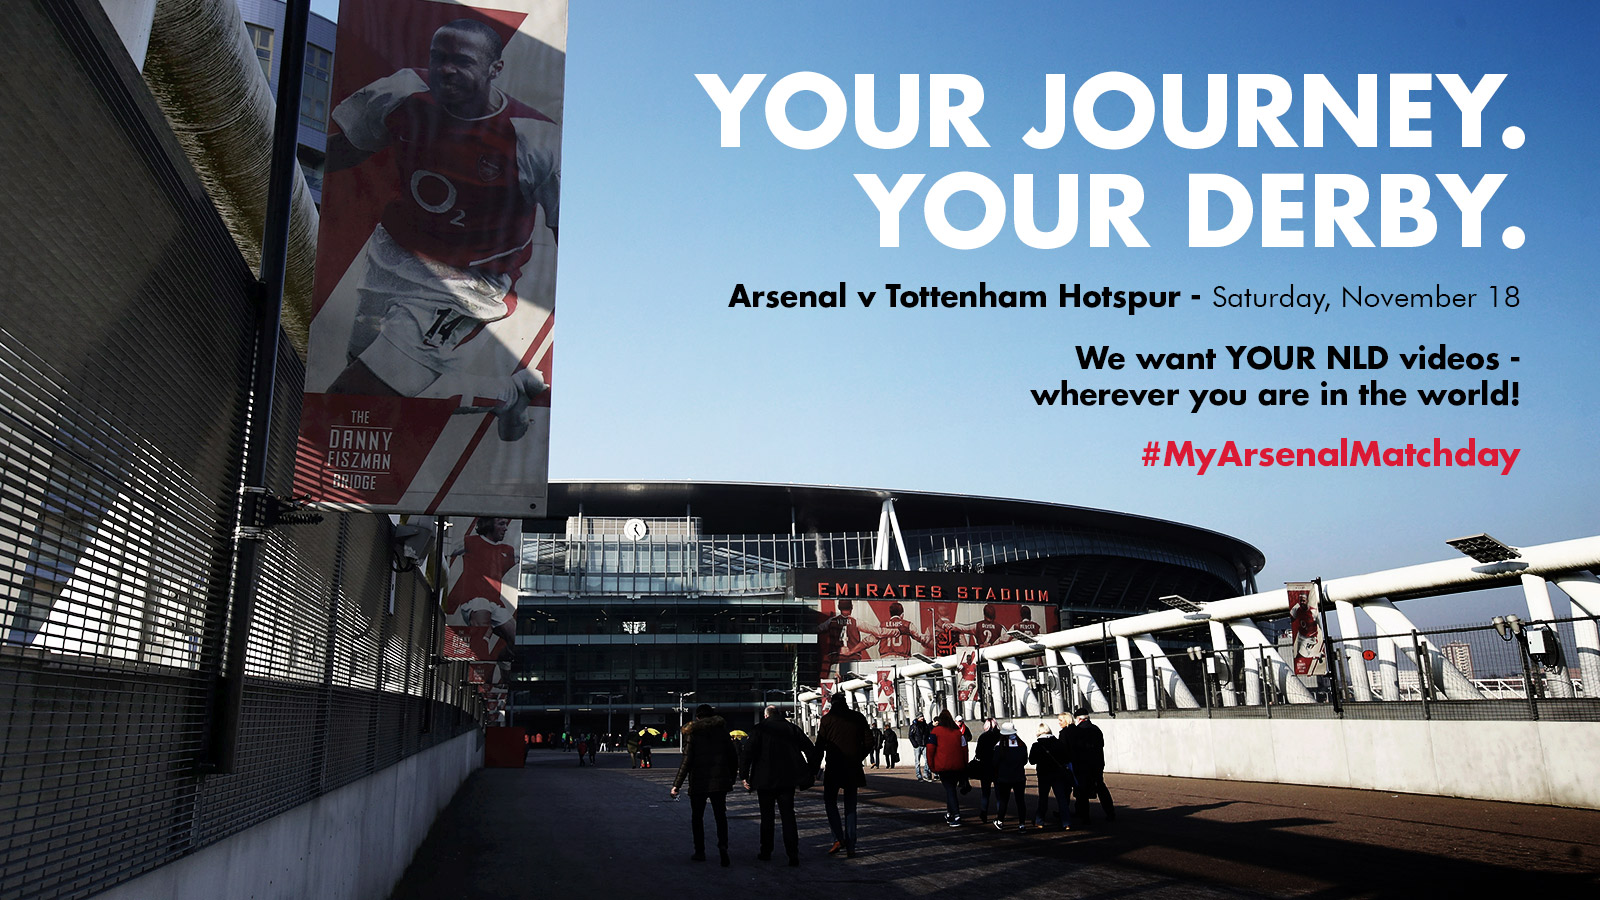 #MyArsenalMatchday for the north London derby